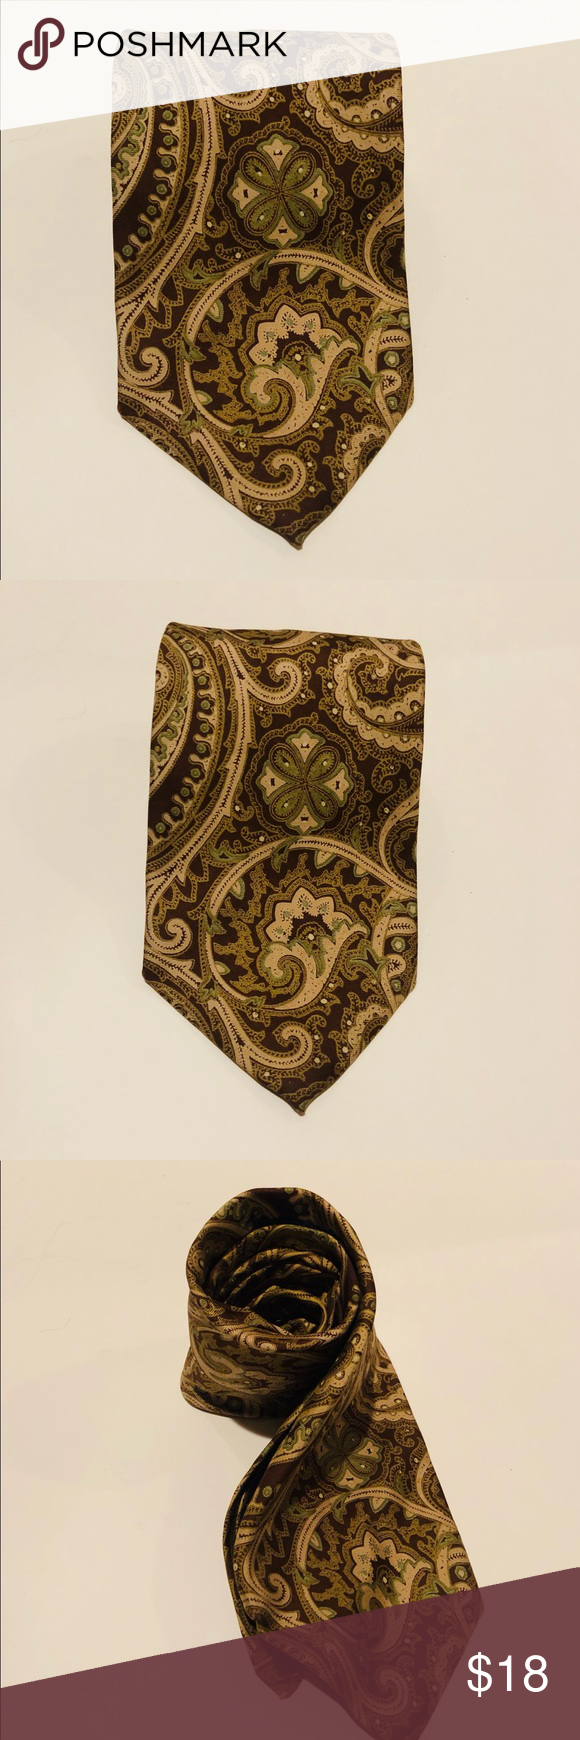 Austin Reed 100 Silk Paisley Multicolored Tie Austin Reed Paisley Tie